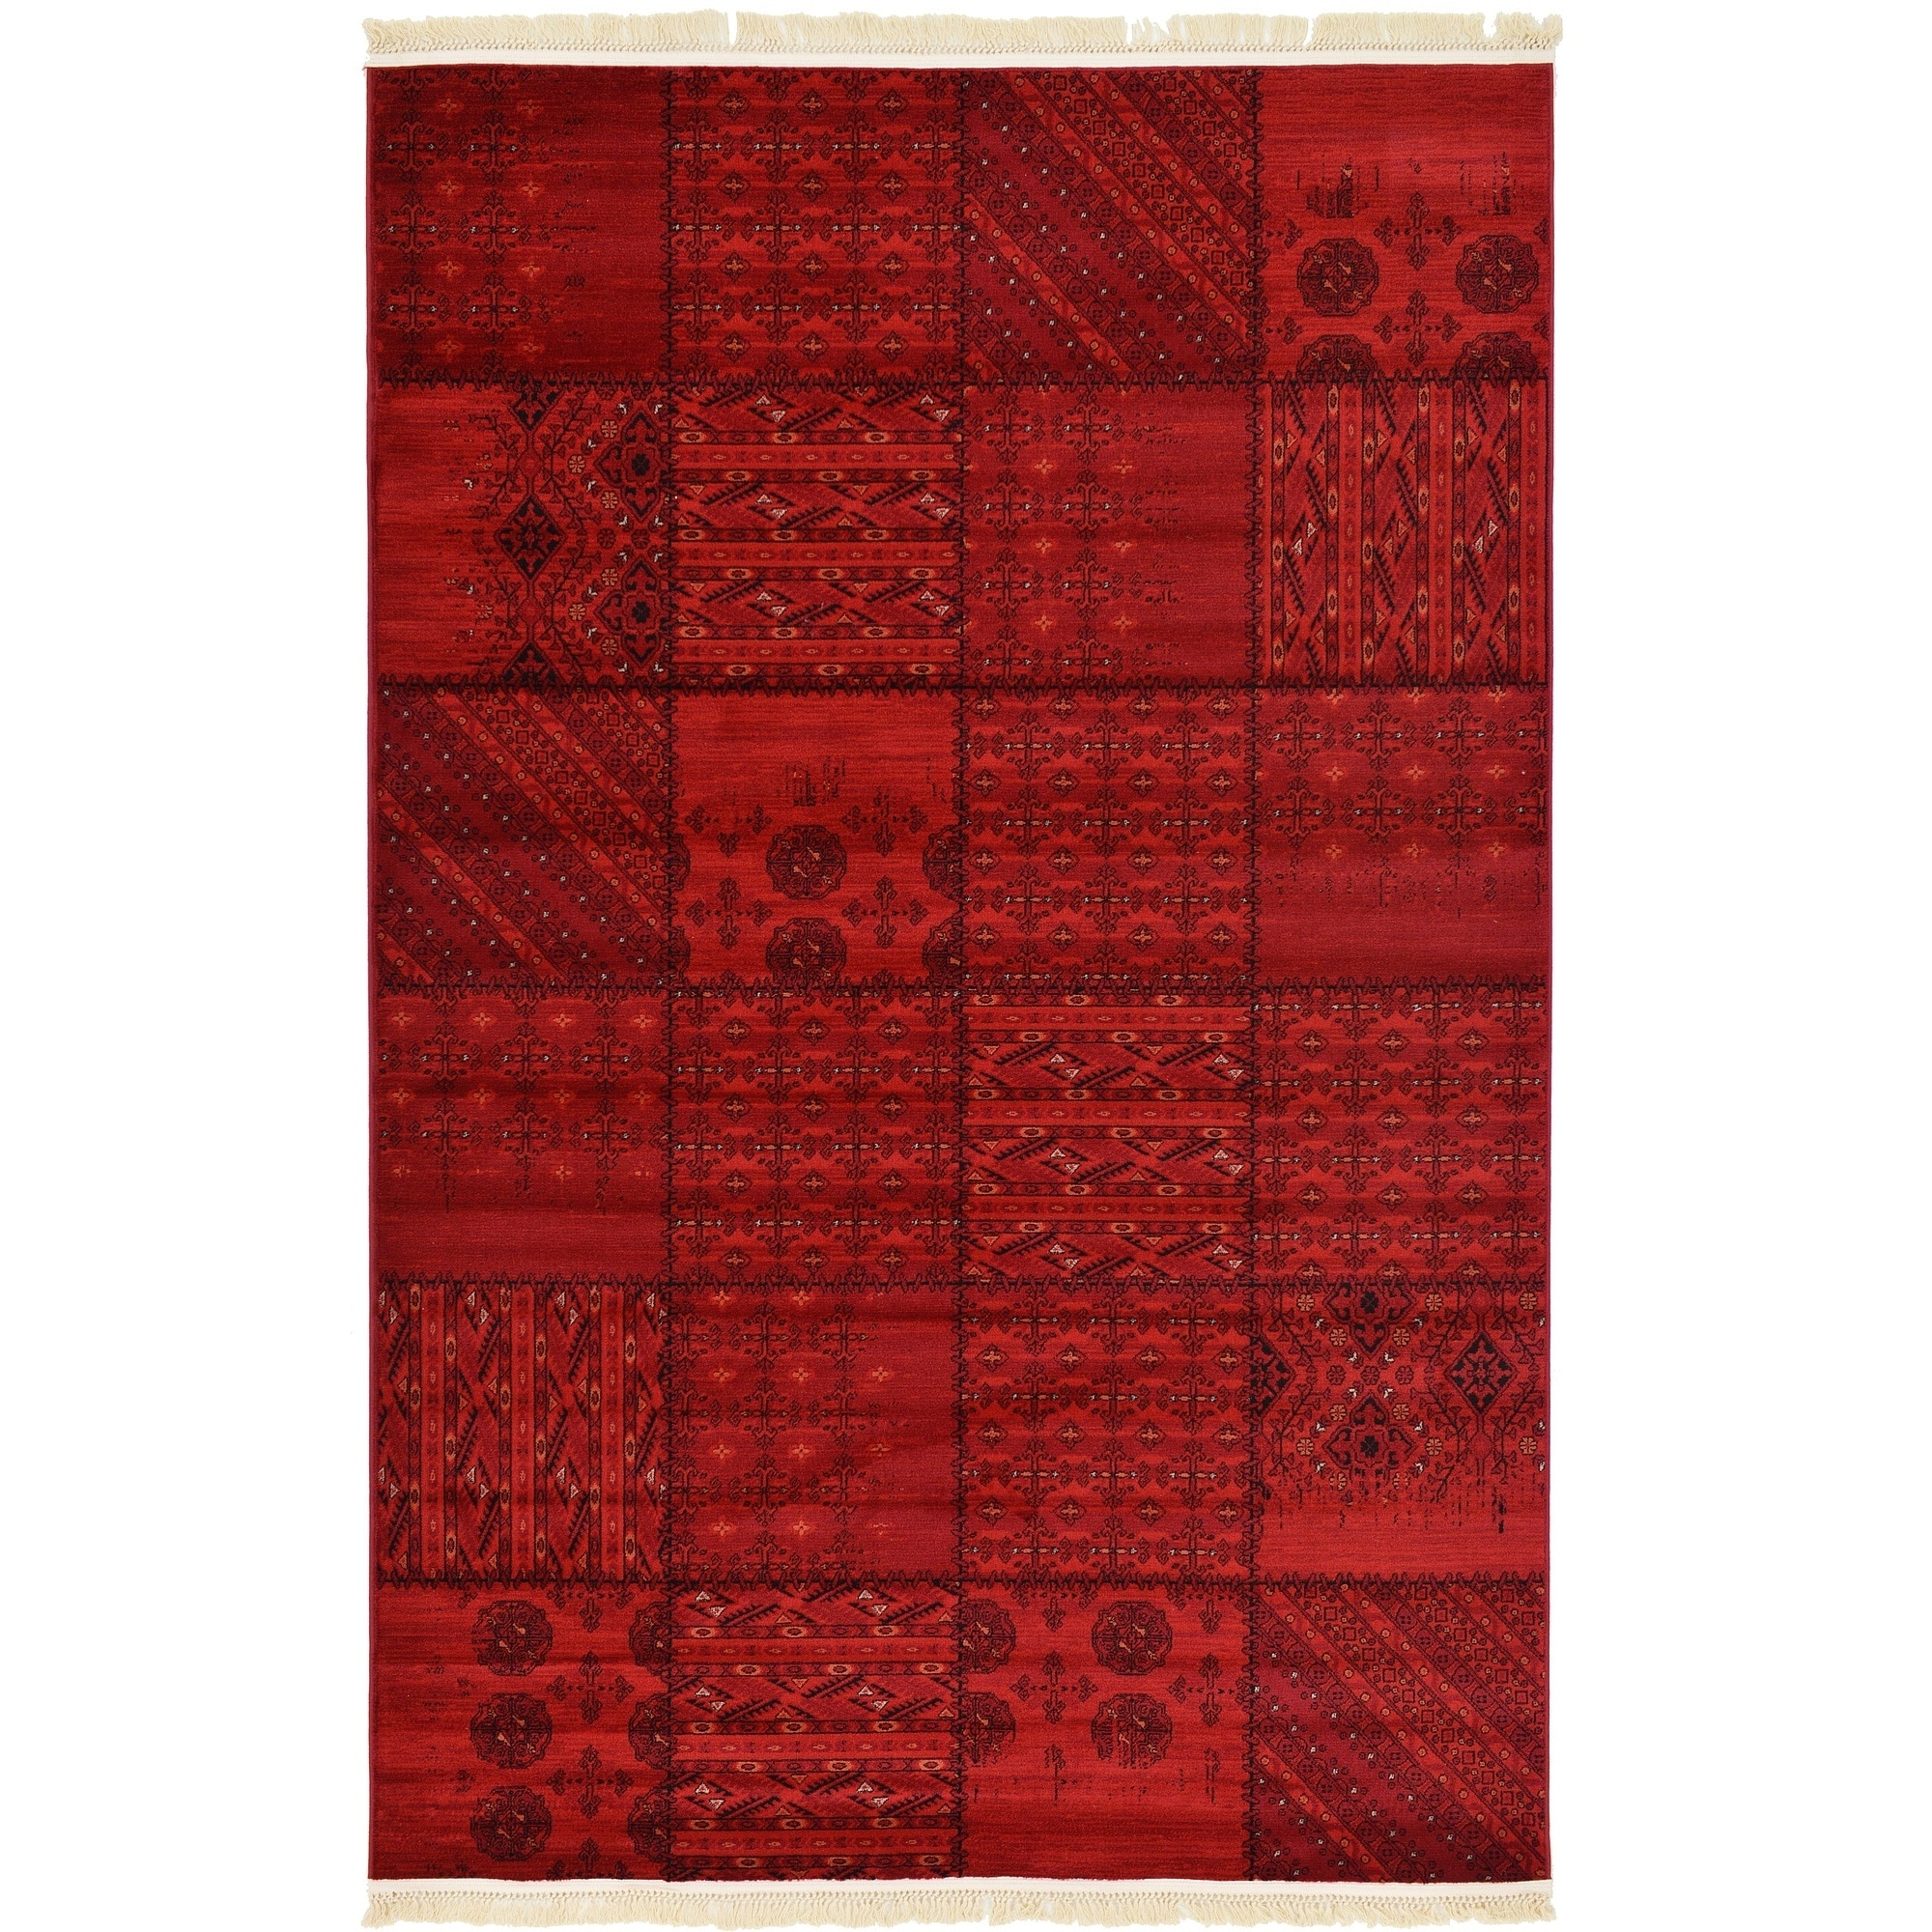 Unique Loom Turkish Bokhara Red Polypropylene Rug (6' x 8' 11)